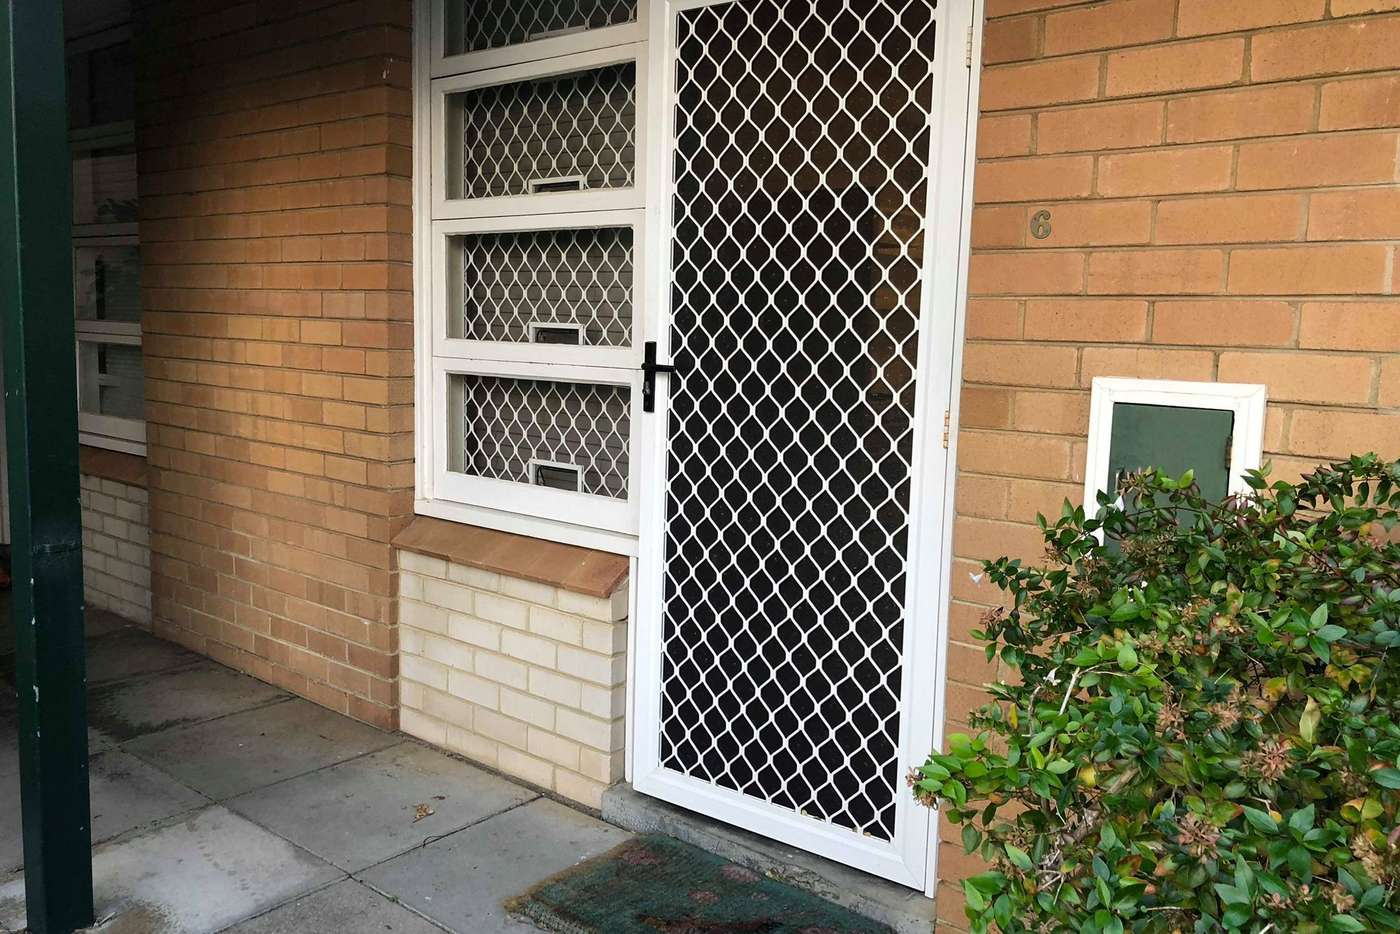 Main view of Homely unit listing, 6/564 William Street, Mount Lawley WA 6050